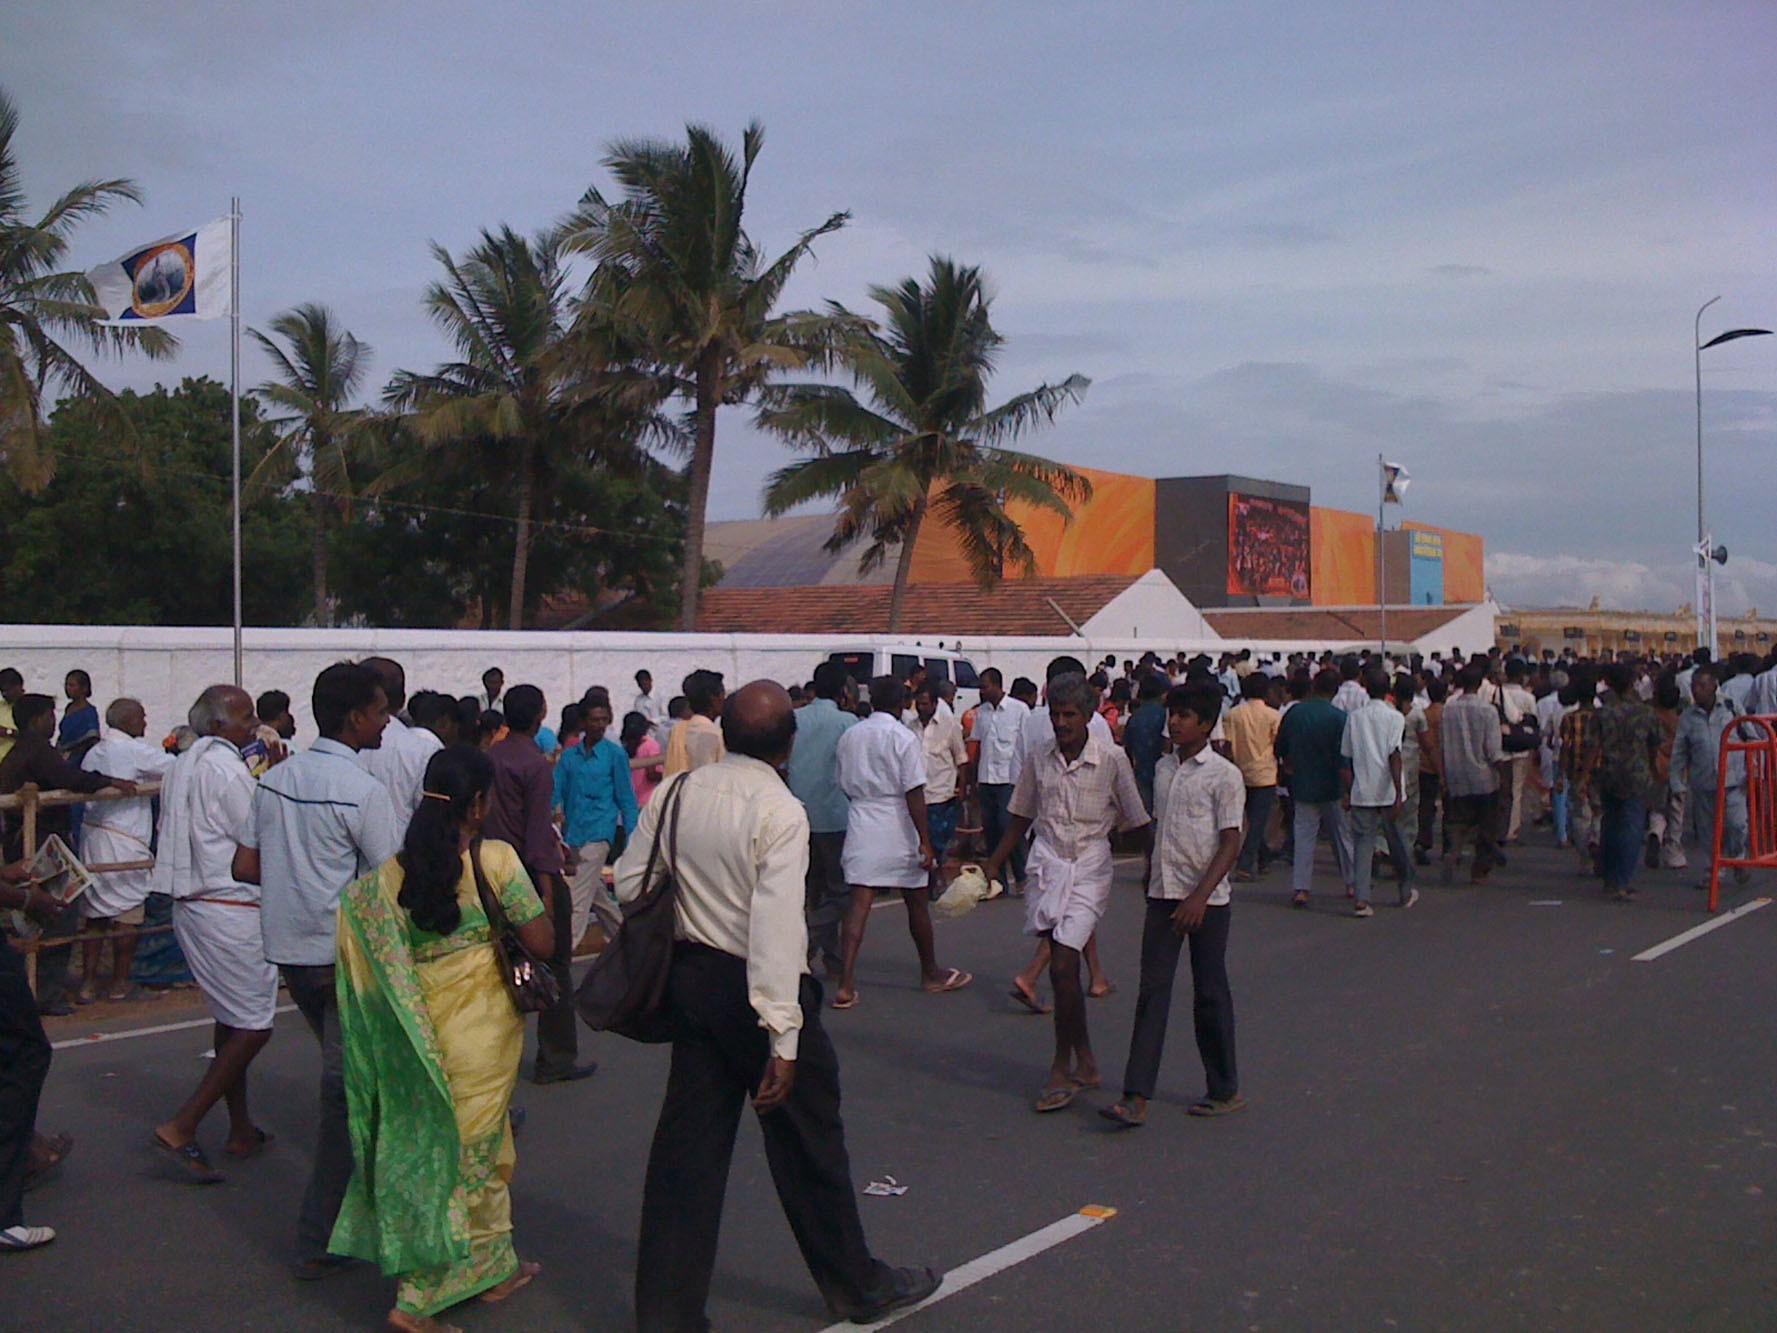 Lakhs of people going for the conference exhibition